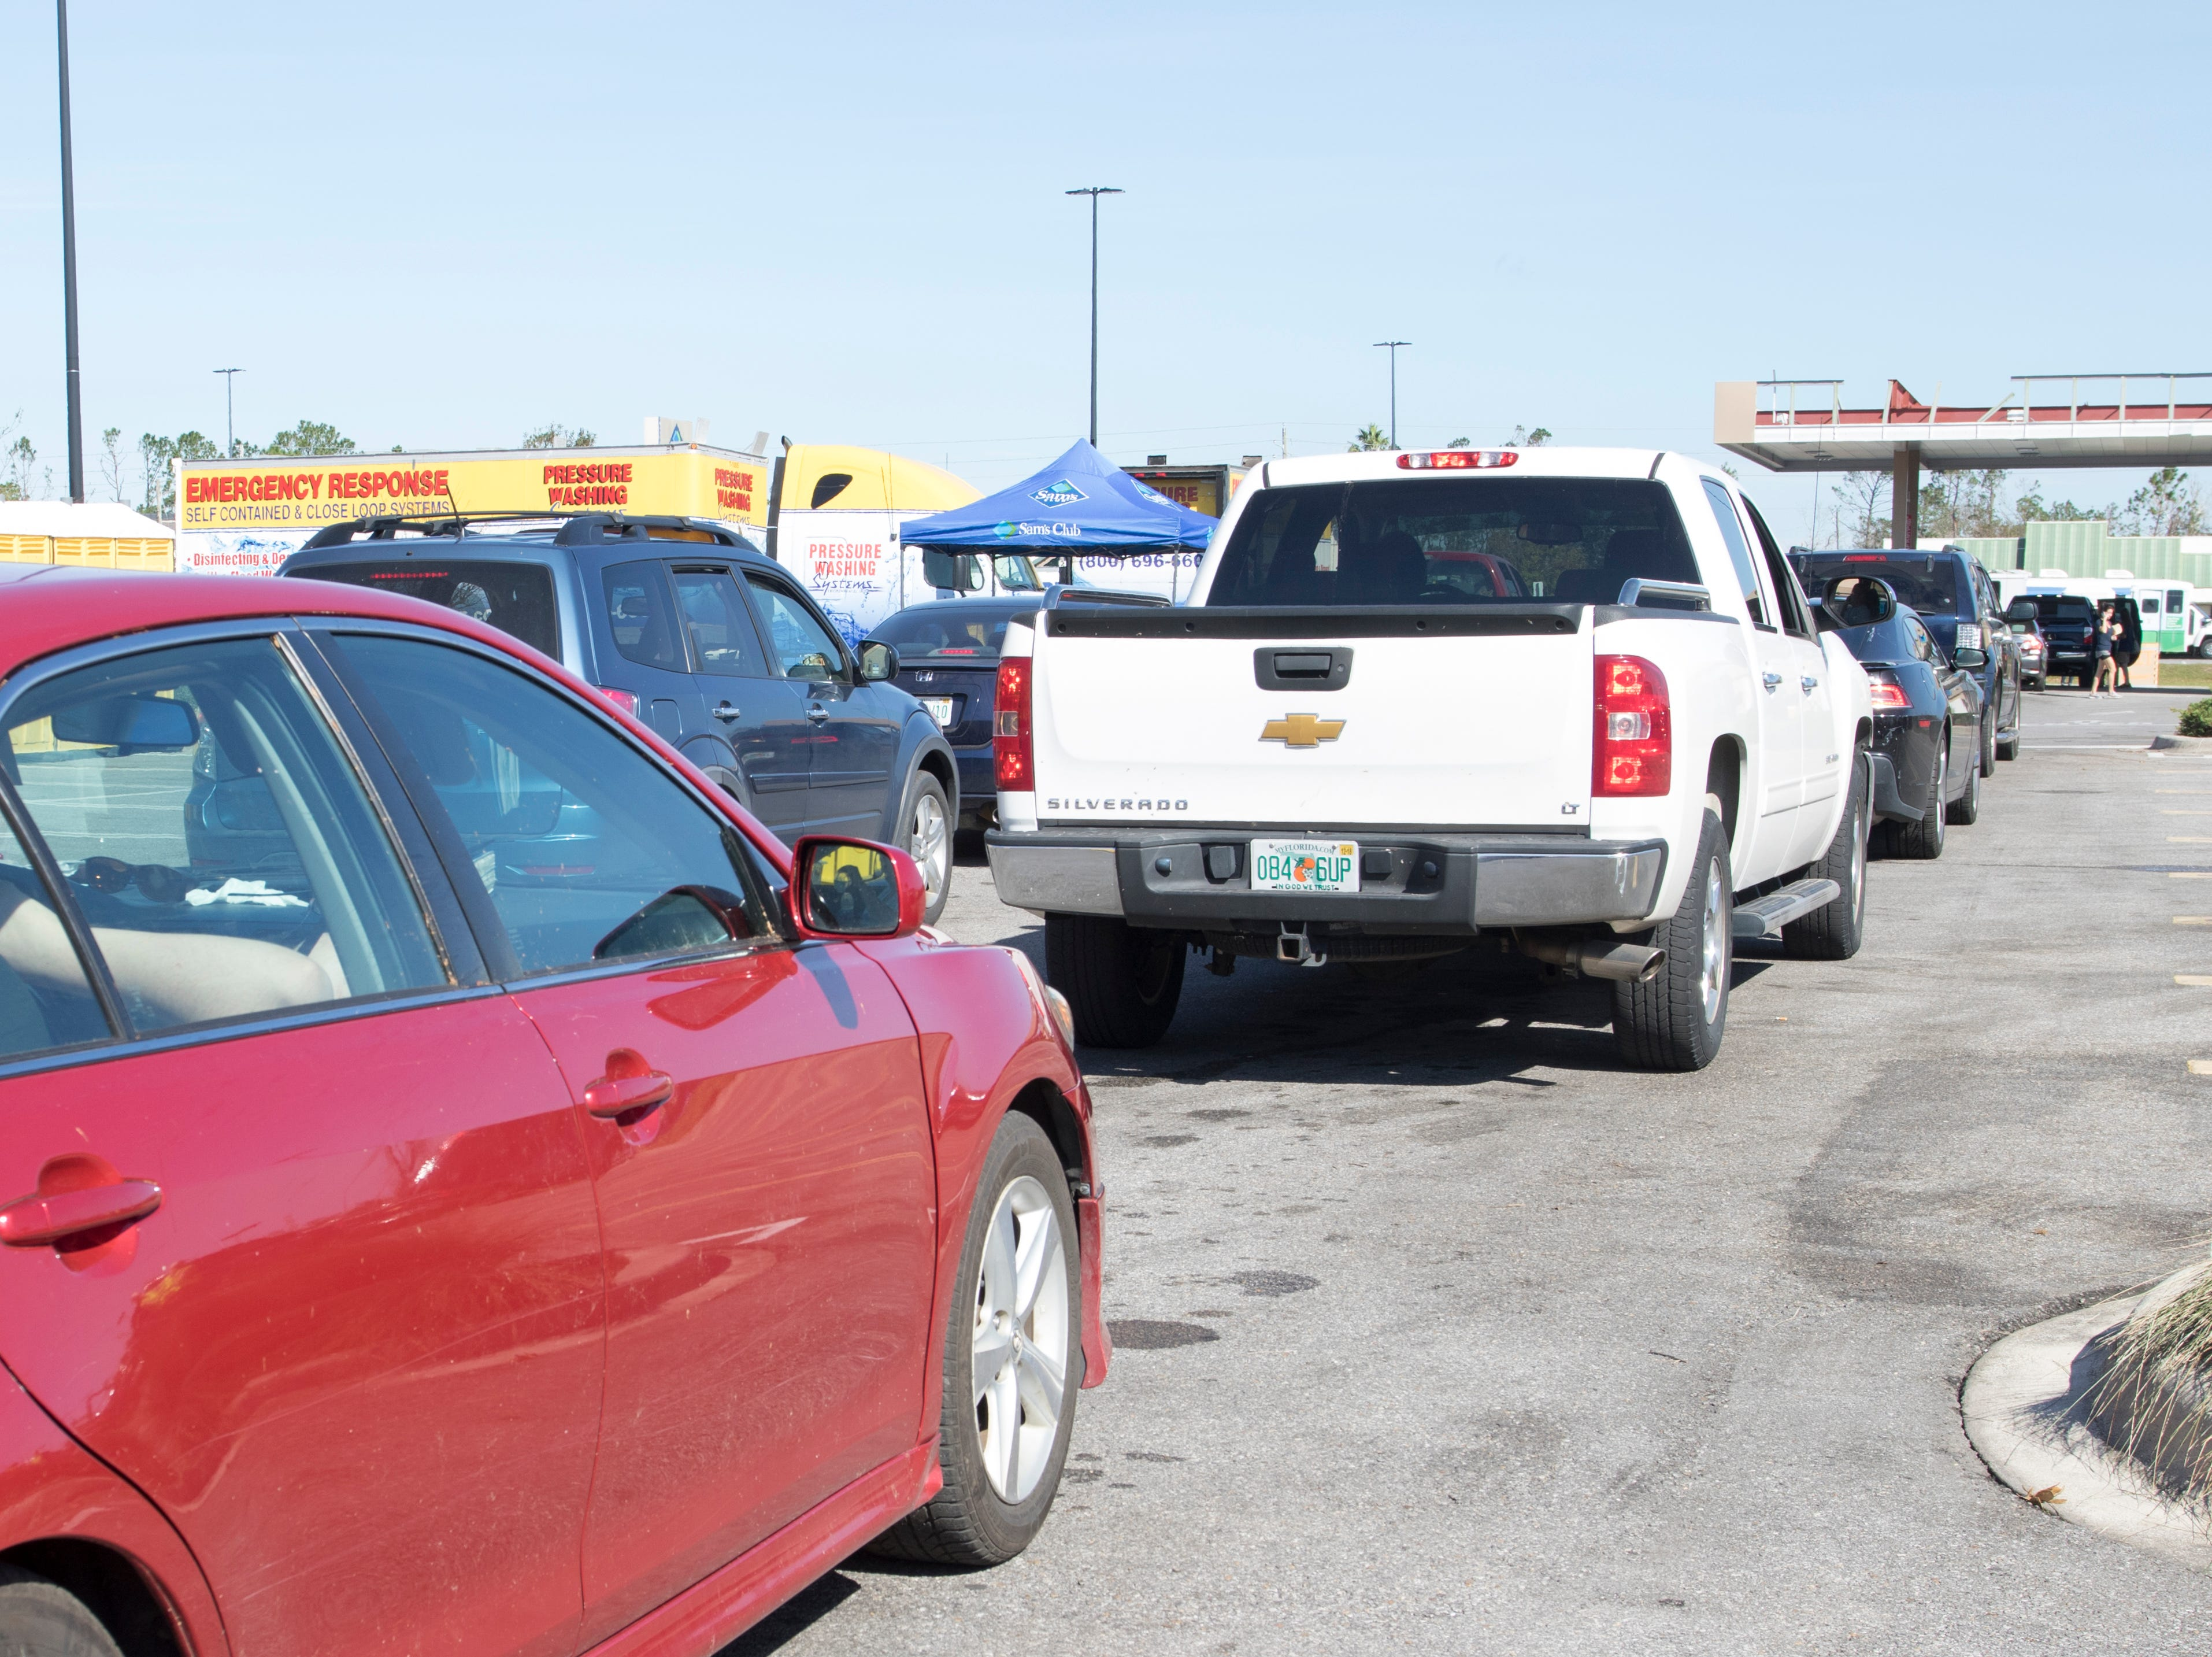 A long line of vehicles wait for gas at the Sam's Club on West 23rd Street in Panama City, Florida on Wednesday, October 17, 2018.  Drivers are thrilled that their wait for gas has gone from up to 4 hours earlier in the week down to 30 to 45 minutes today.